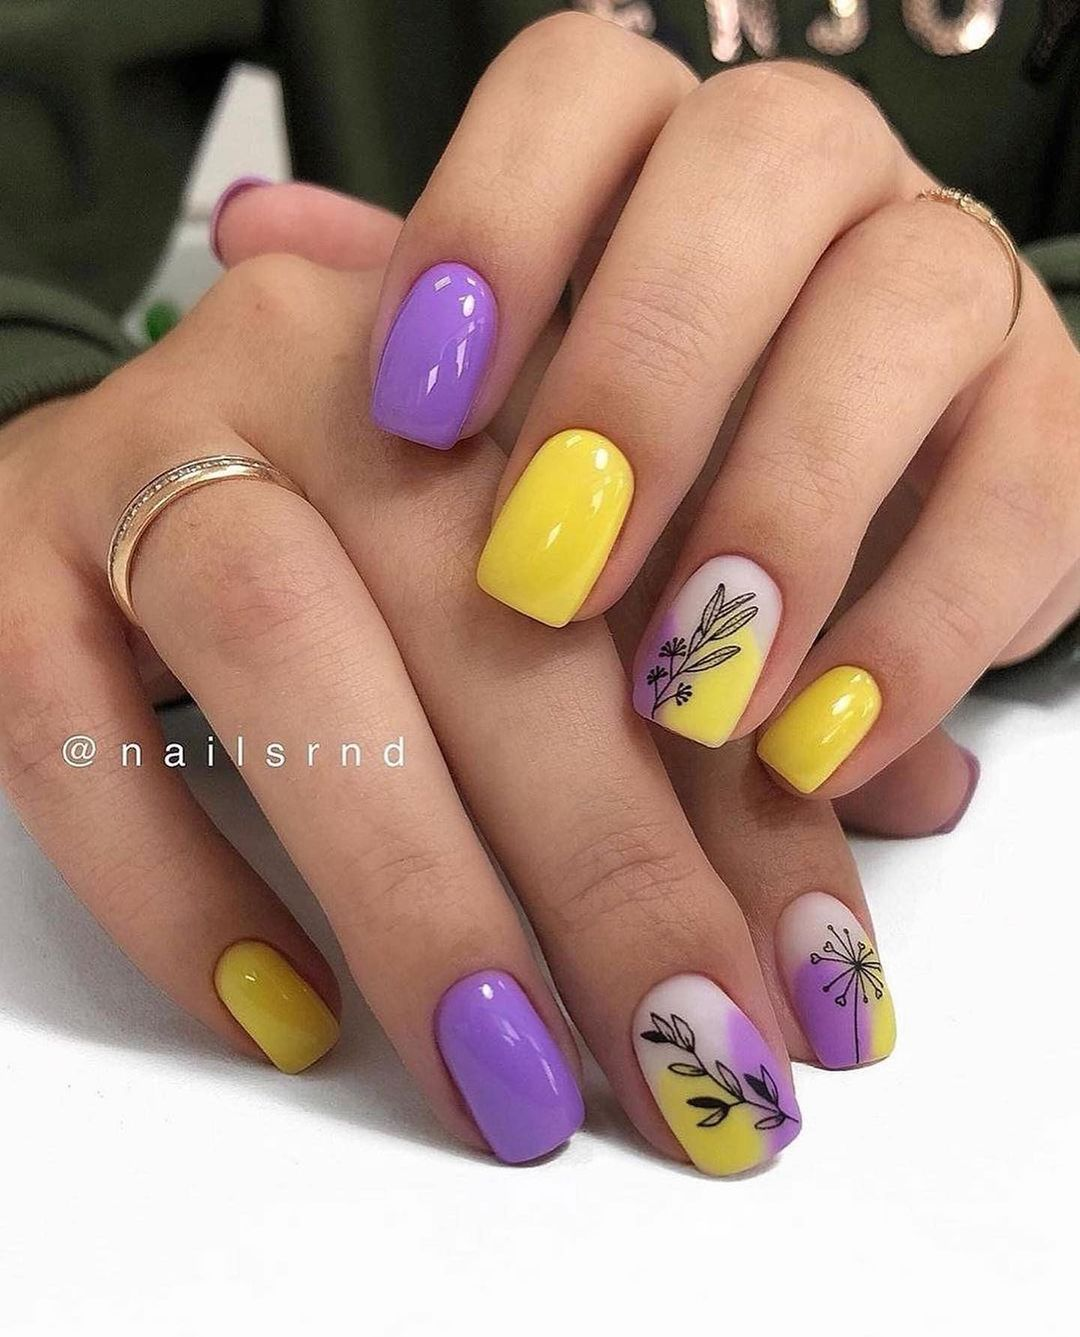 25 Trending Summer Nail Colors And Designs For 2021 images 4